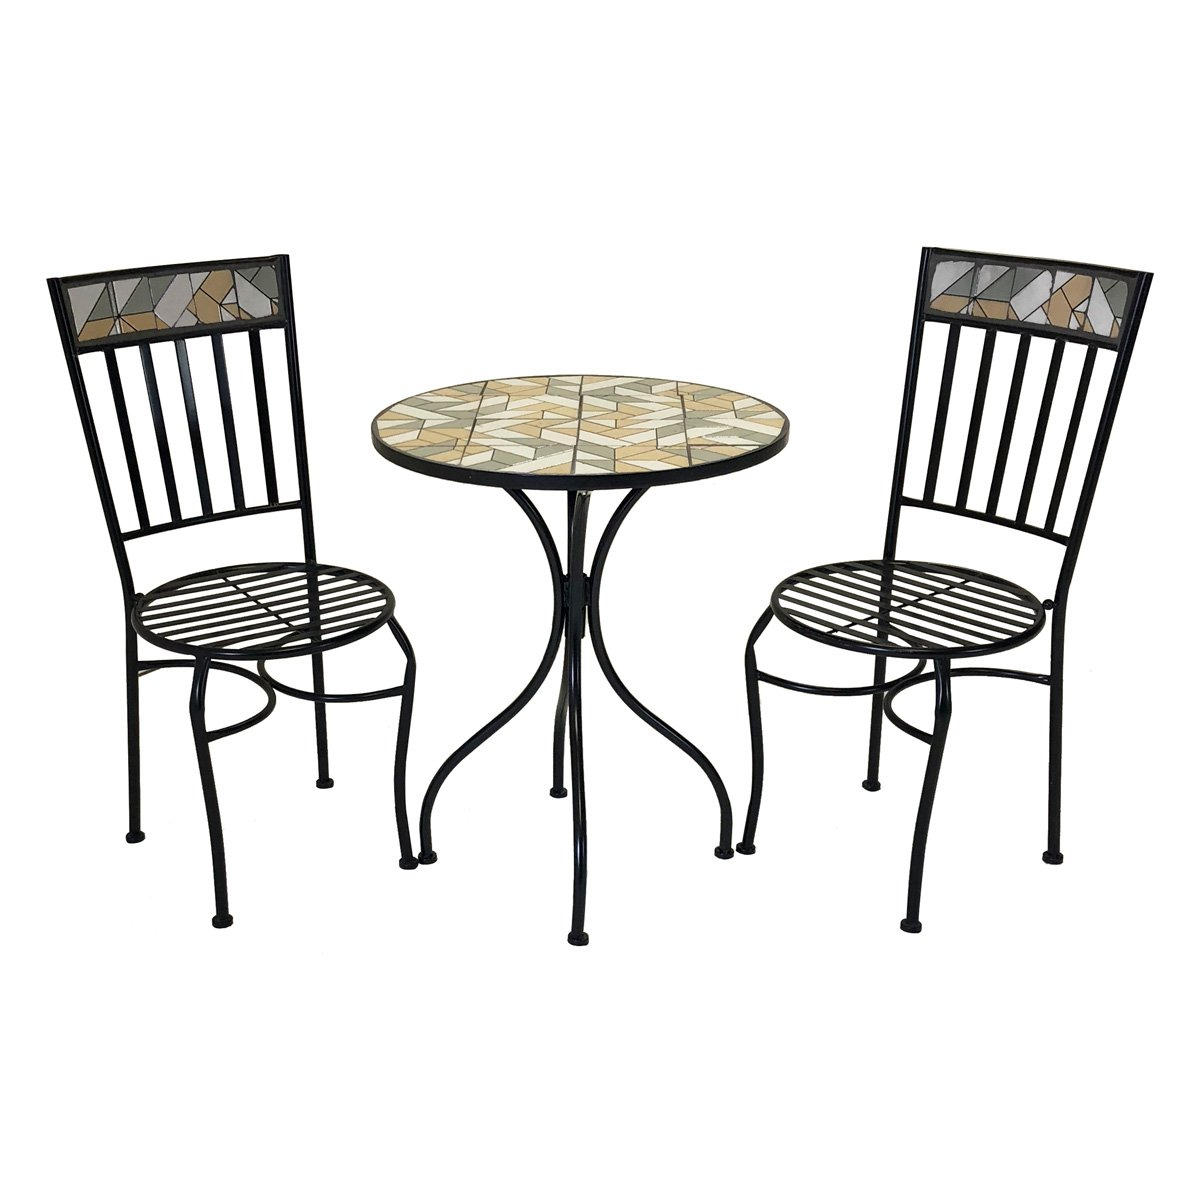 Charles Bentley 3 Piece Geometric Mosaic Bistro Set